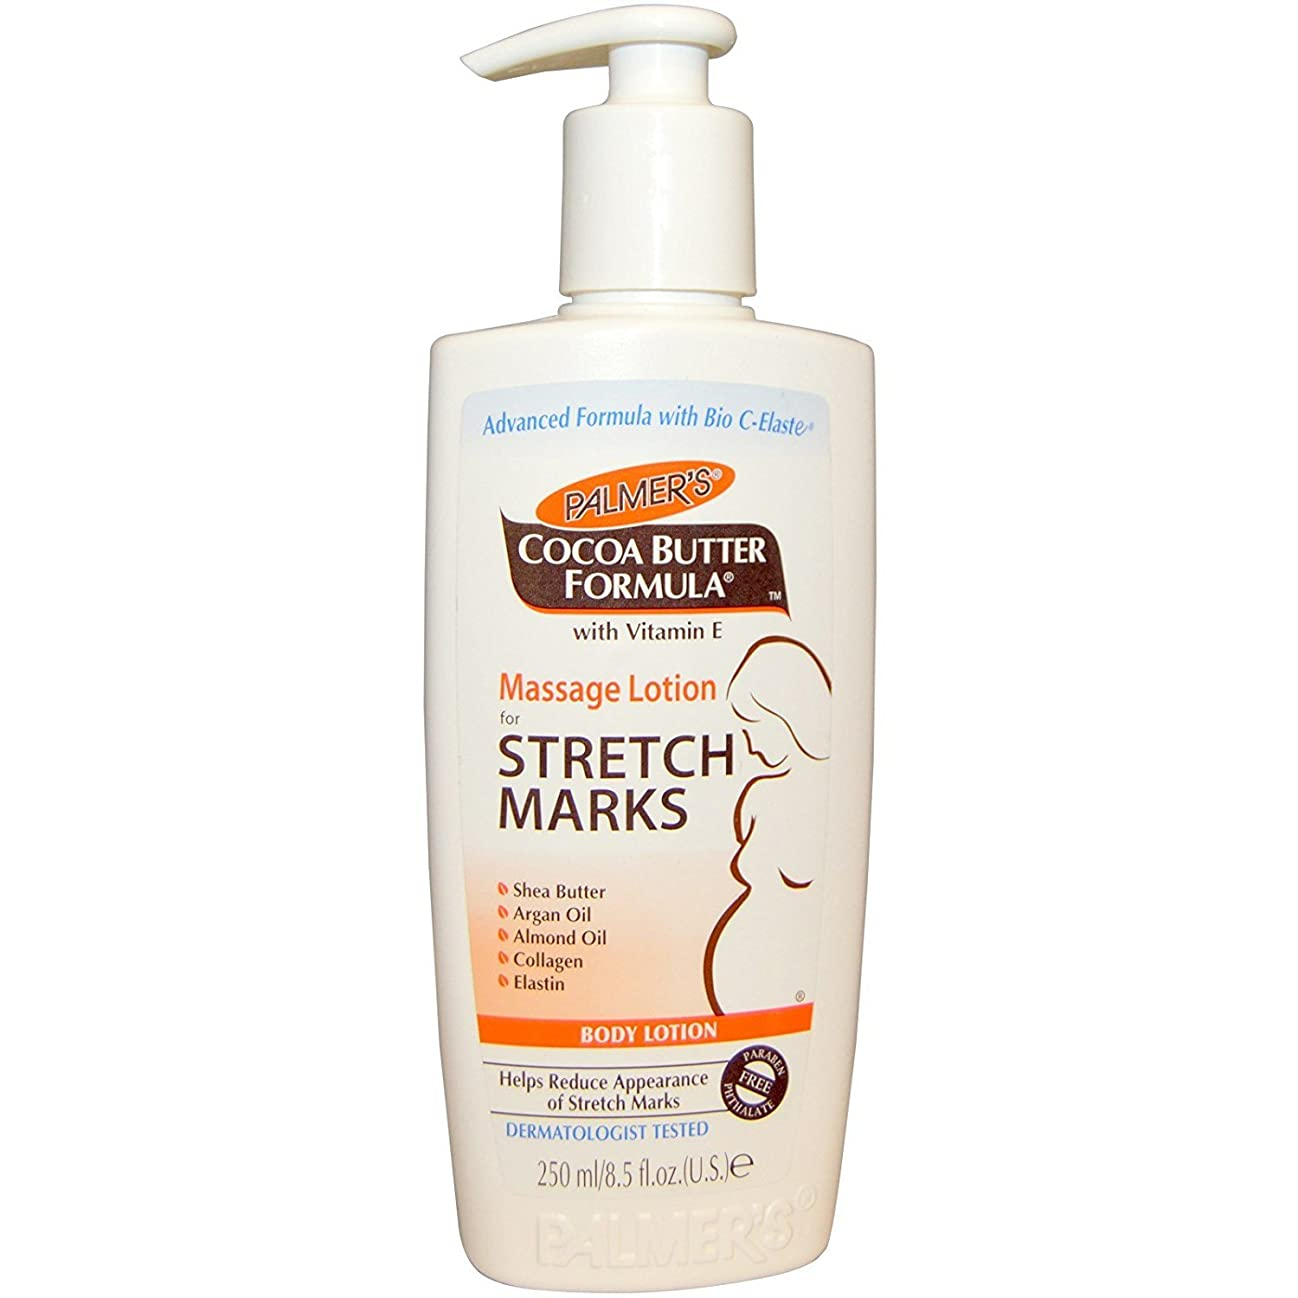 ペナルティ狂う労苦Palmer's Cocoa Butter Formula Massage Lotion For Stretch Marks with Vitamin E and Shea Butter Women Body Lotion, 8.5 Ounce by Palmer's [並行輸入品]